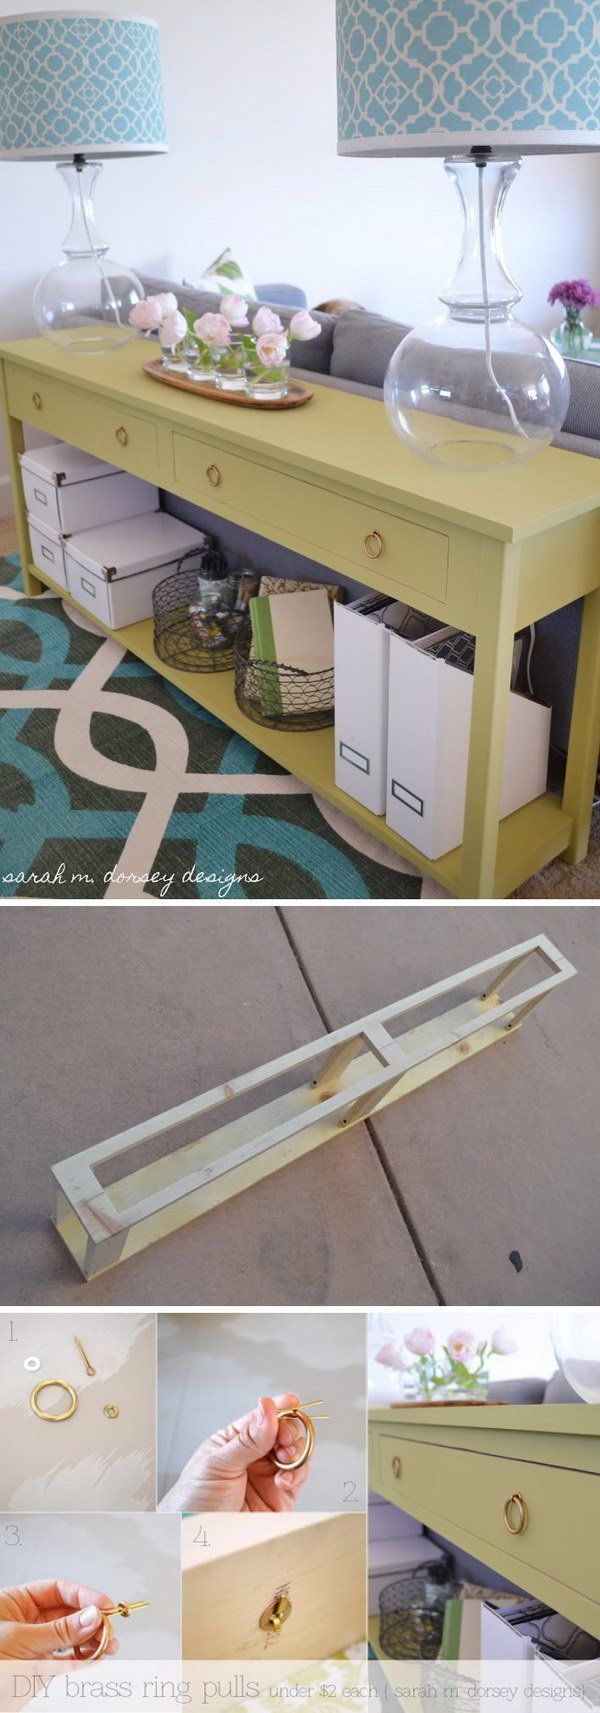 DIY Sofa Table Behind The Couch.   see next pic on brass rings for drawer pulls